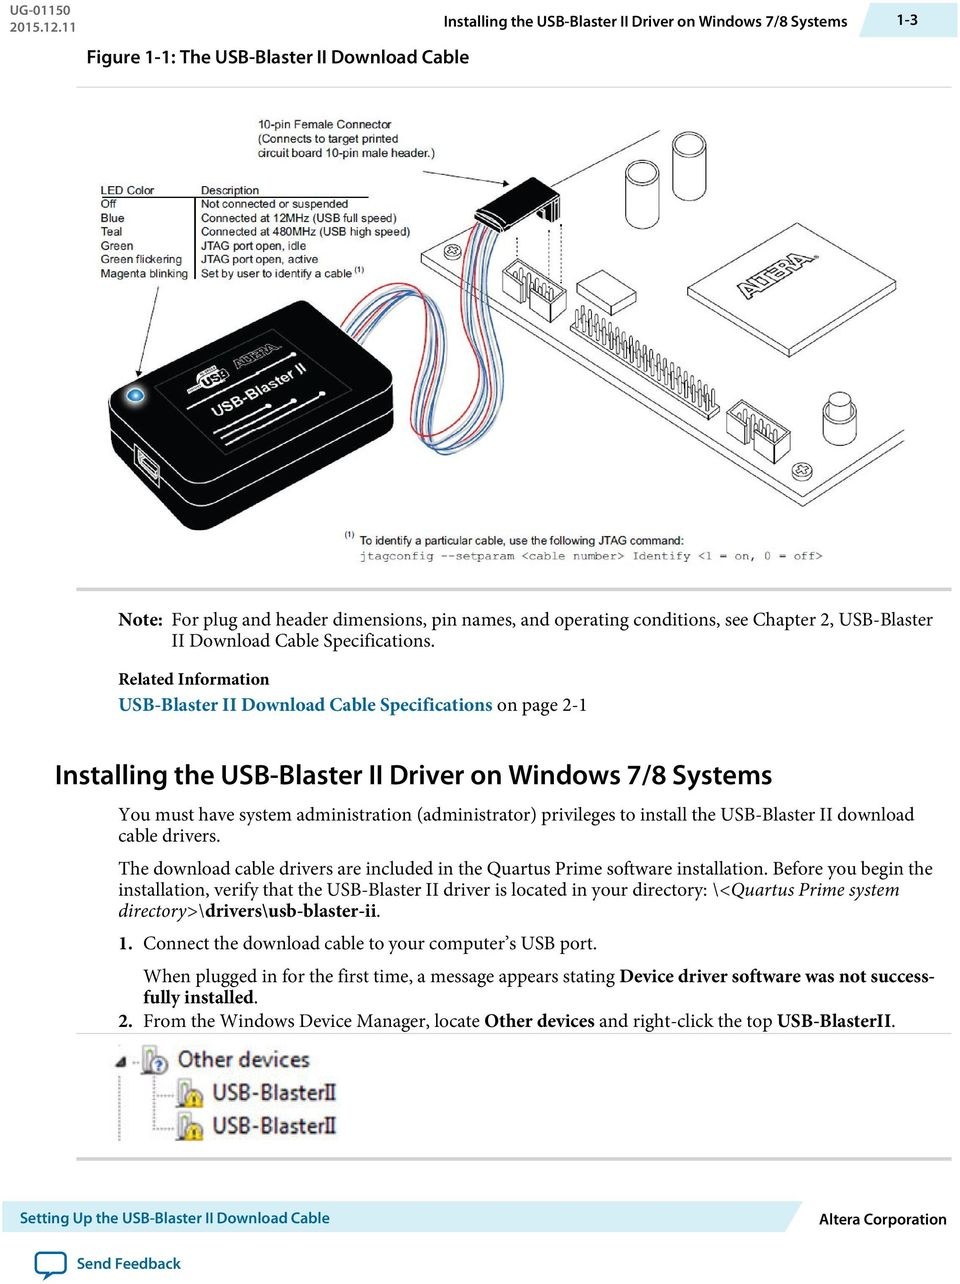 Related Information USB-Blaster II Download Cable Specifications on page 2-1 Installing the USB-Blaster II Driver on Windows 7/8 Systems You must have system administration (administrator) privileges